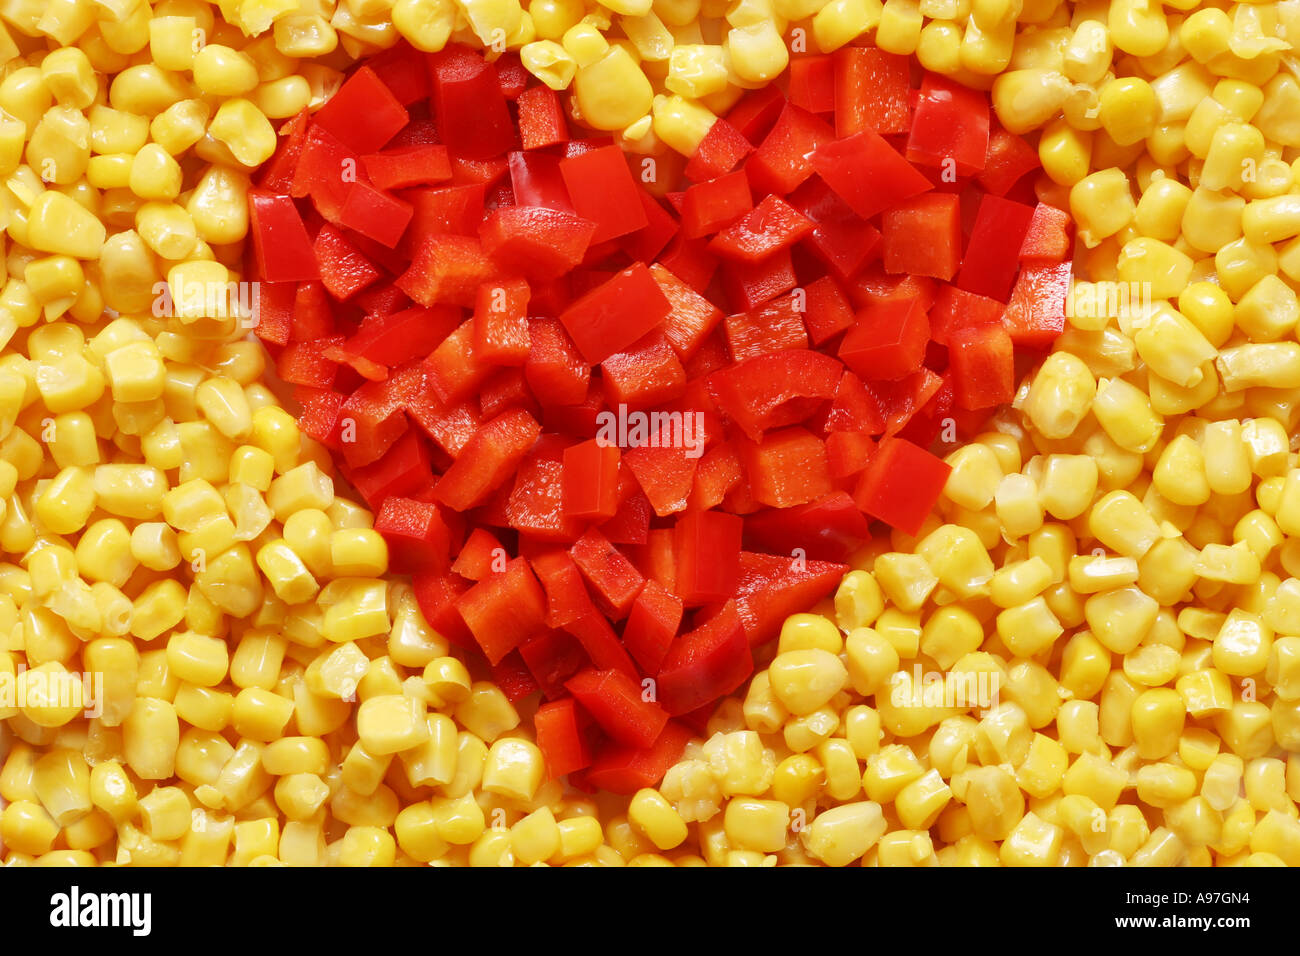 Pepper heart surrounded by corn. Could symbolise the love for vegetables or that vegetables are good for your heart or your body - Stock Image